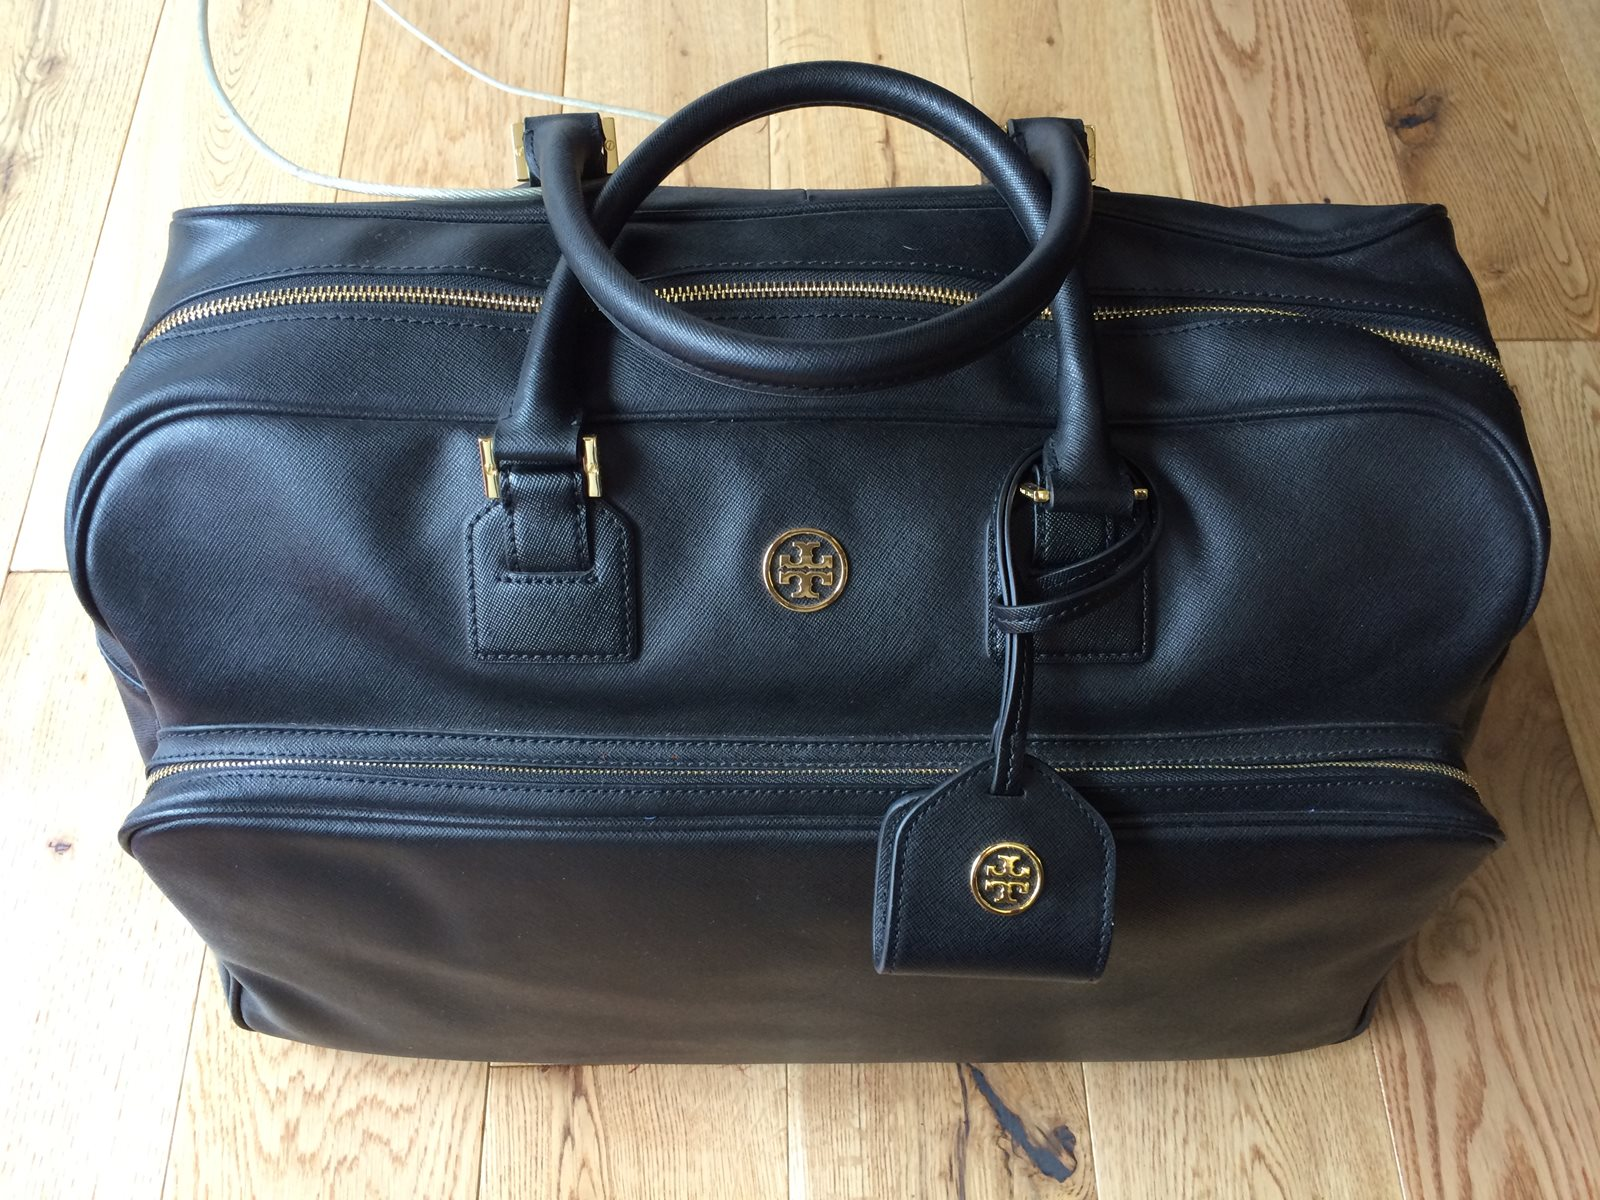 Tory Burch Black Leather Large Bag - The Loft, London